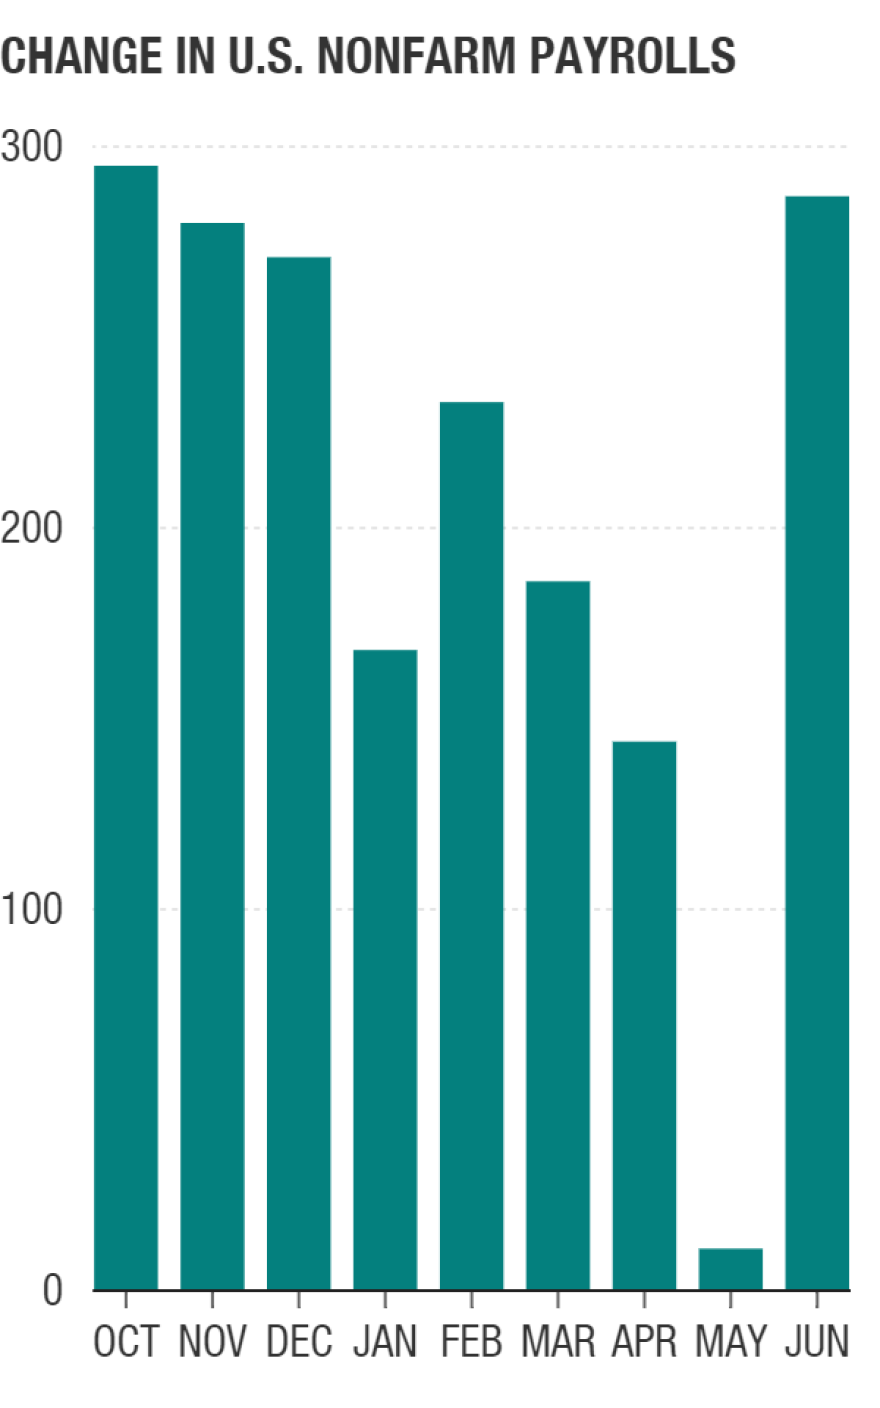 Payrolls jumped 287,000 last month after May's revised increase of 11,000.